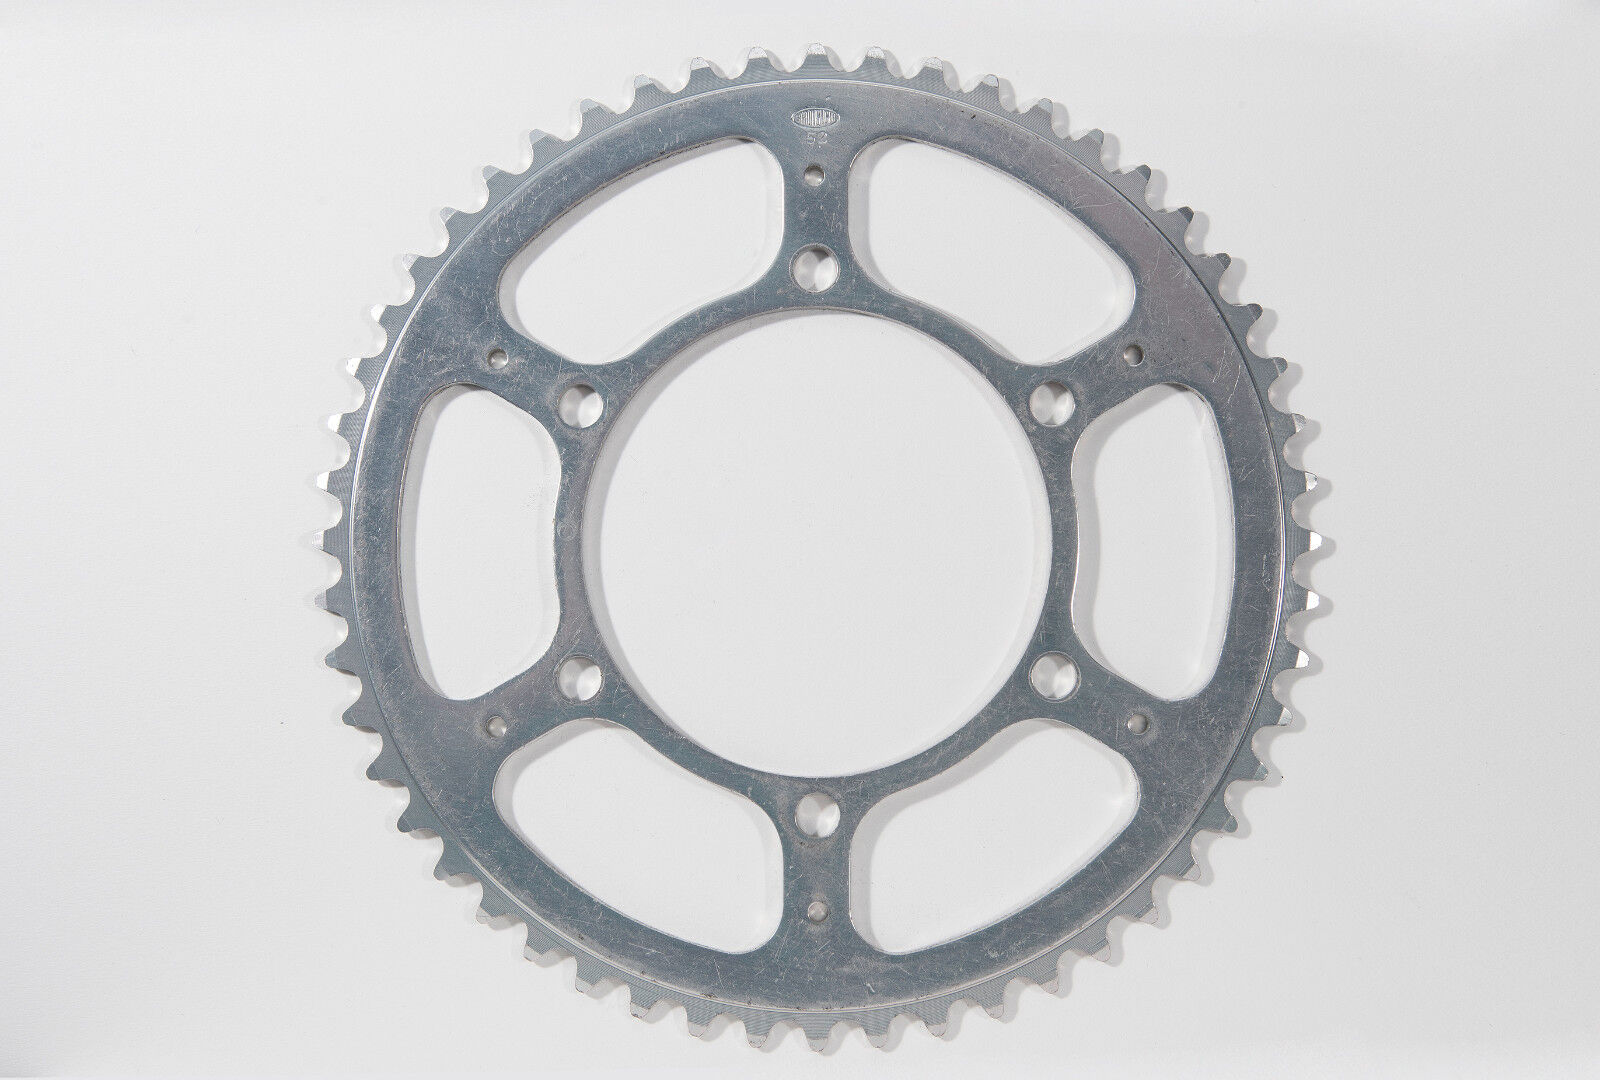 NOS Vintage THC-1B Stronglight 3 6-bolt alloy chainring, 52T, 116BCD, 4.25oz